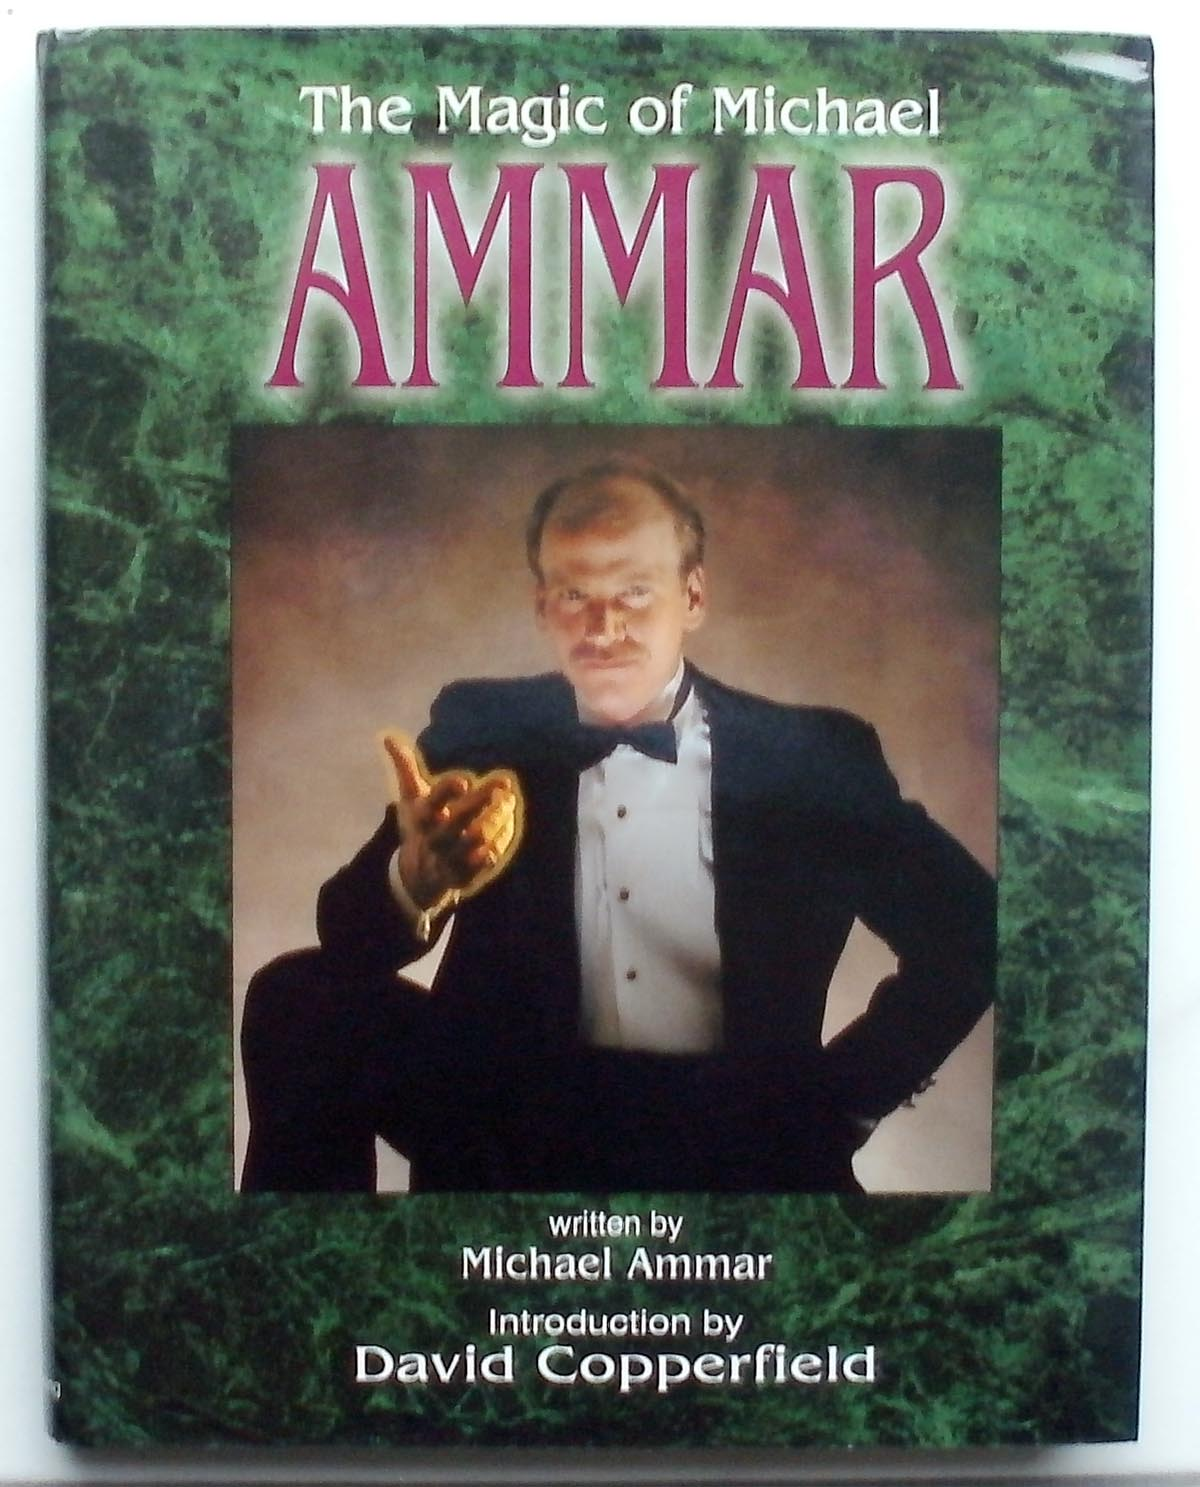 Ammar, Michael:  The Magic of Michael Ammar. - Introduction by David Copperfield.